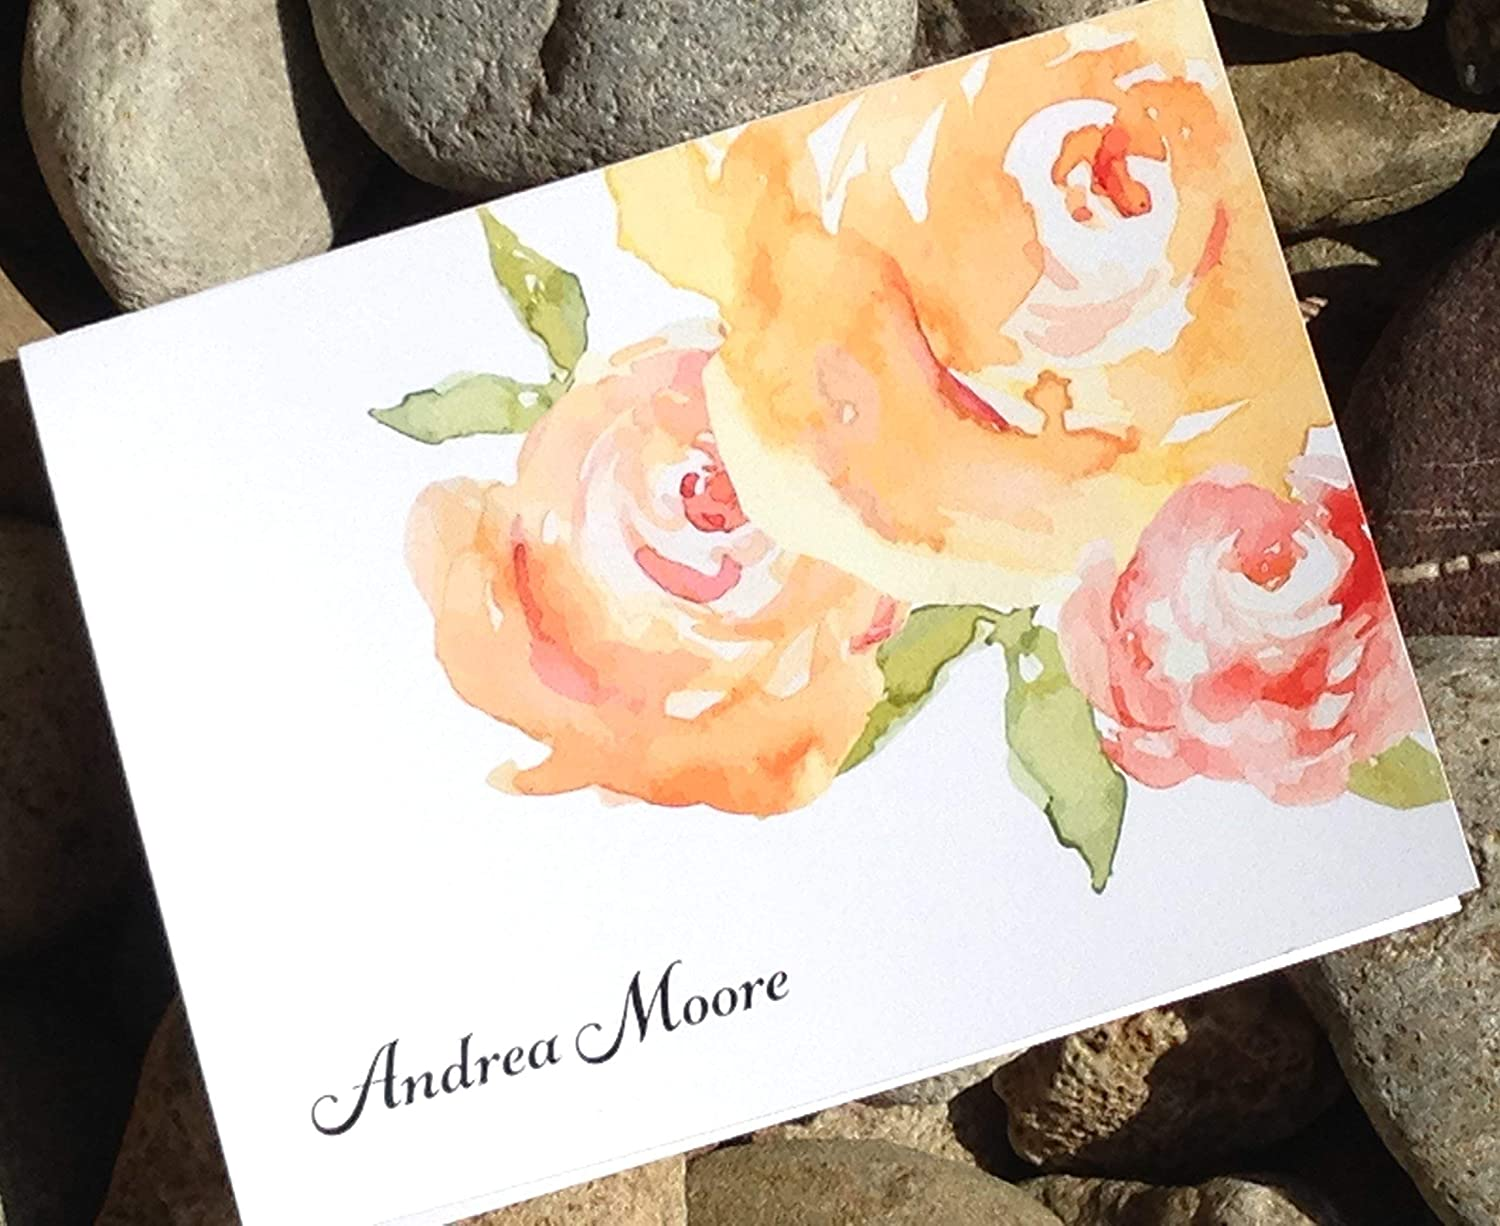 Personalized Stationery Note Cards - Floral, Watercolor, Thank You Notes - Stationary with Envelopes